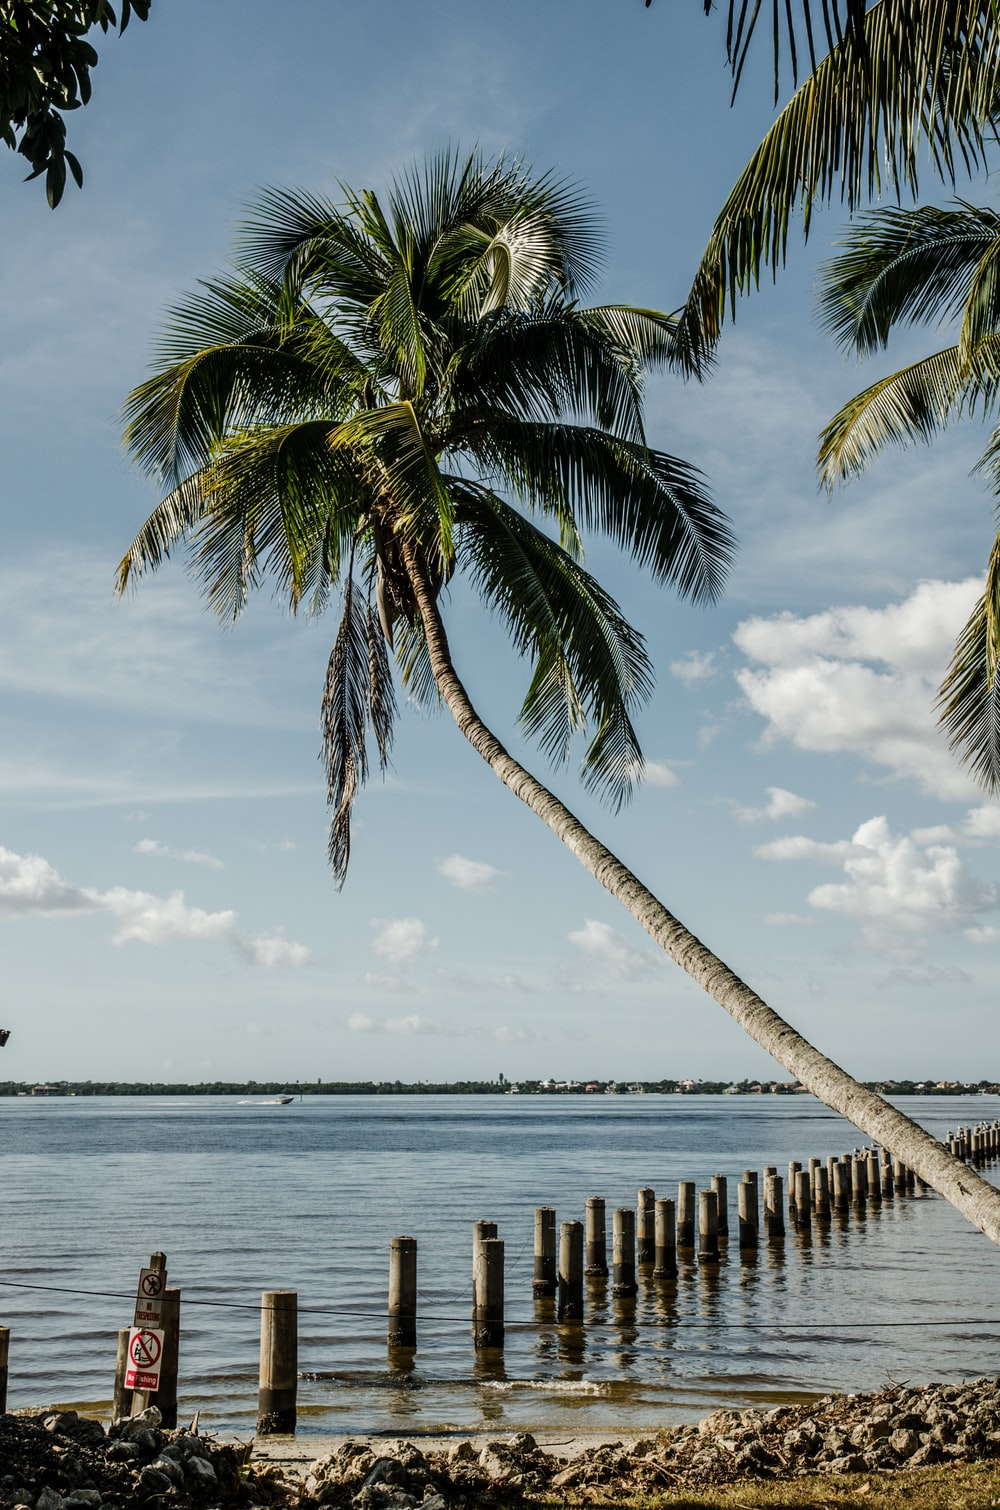 coconut tree near sea during daytime